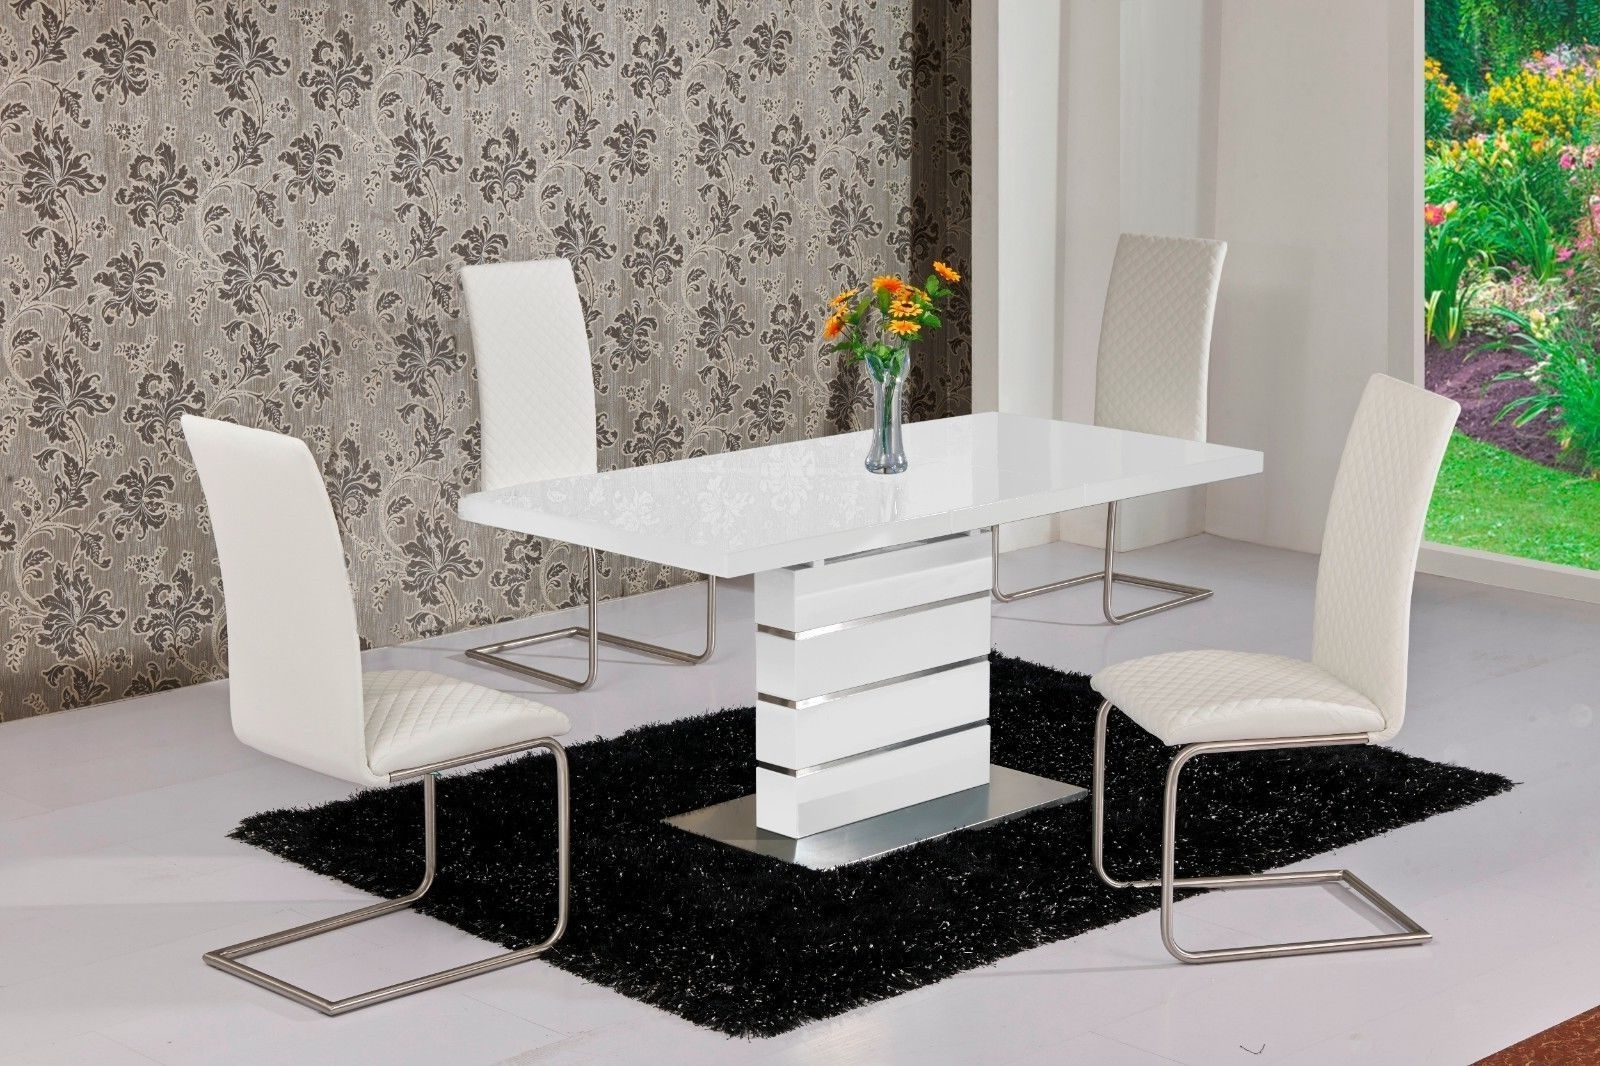 Extendable Dining Table And 4 Chairs With Regard To Favorite Mace High Gloss Extending 120 160 Dining Table & Chair Set – White (Gallery 24 of 25)